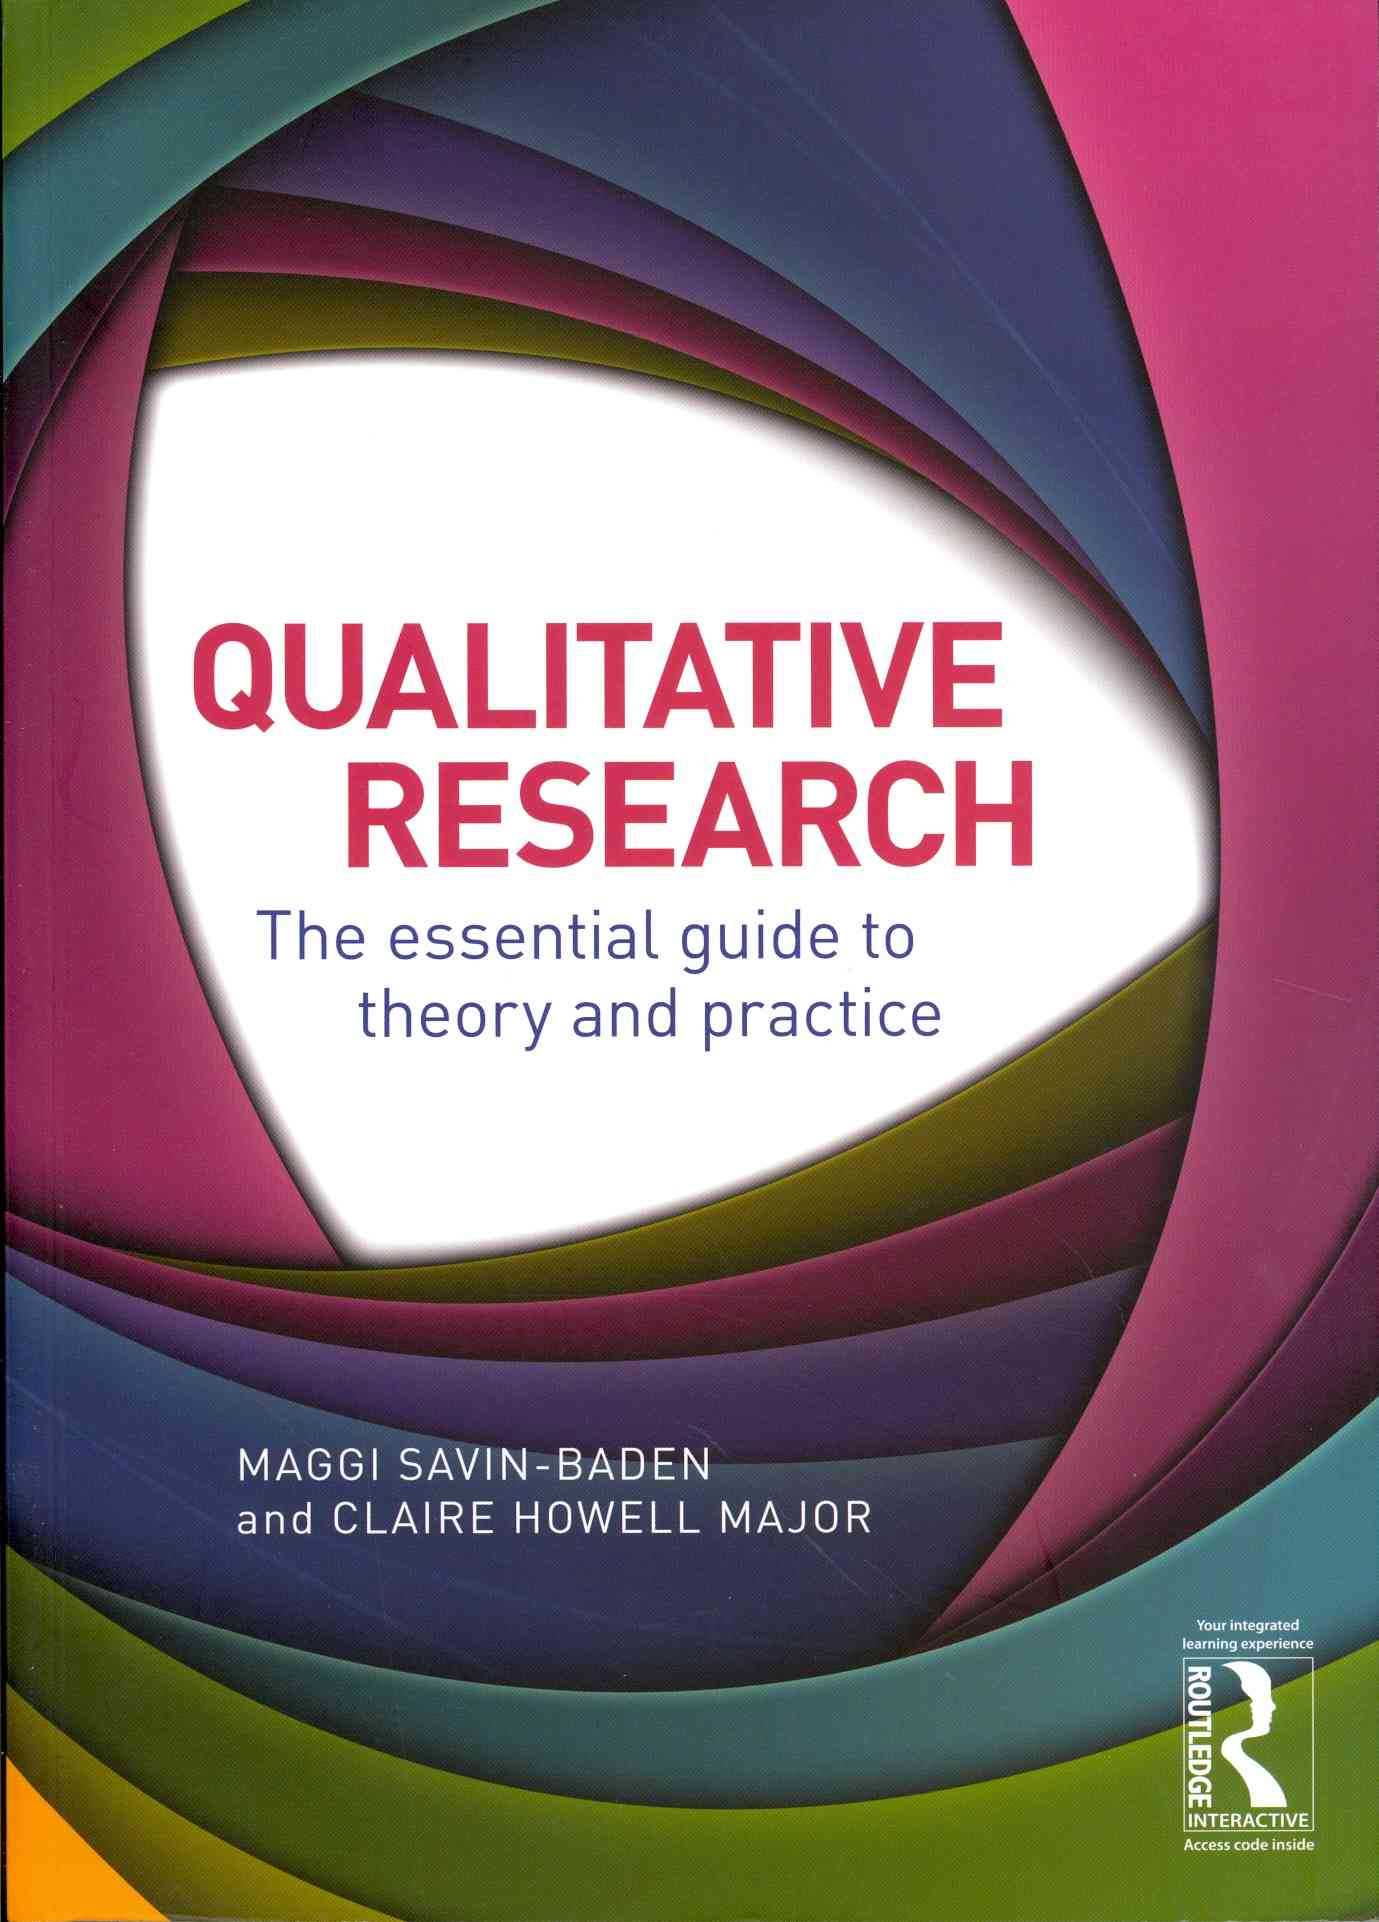 Qualitative Research By Savin-baden, Maqqi/ Howell, Claire